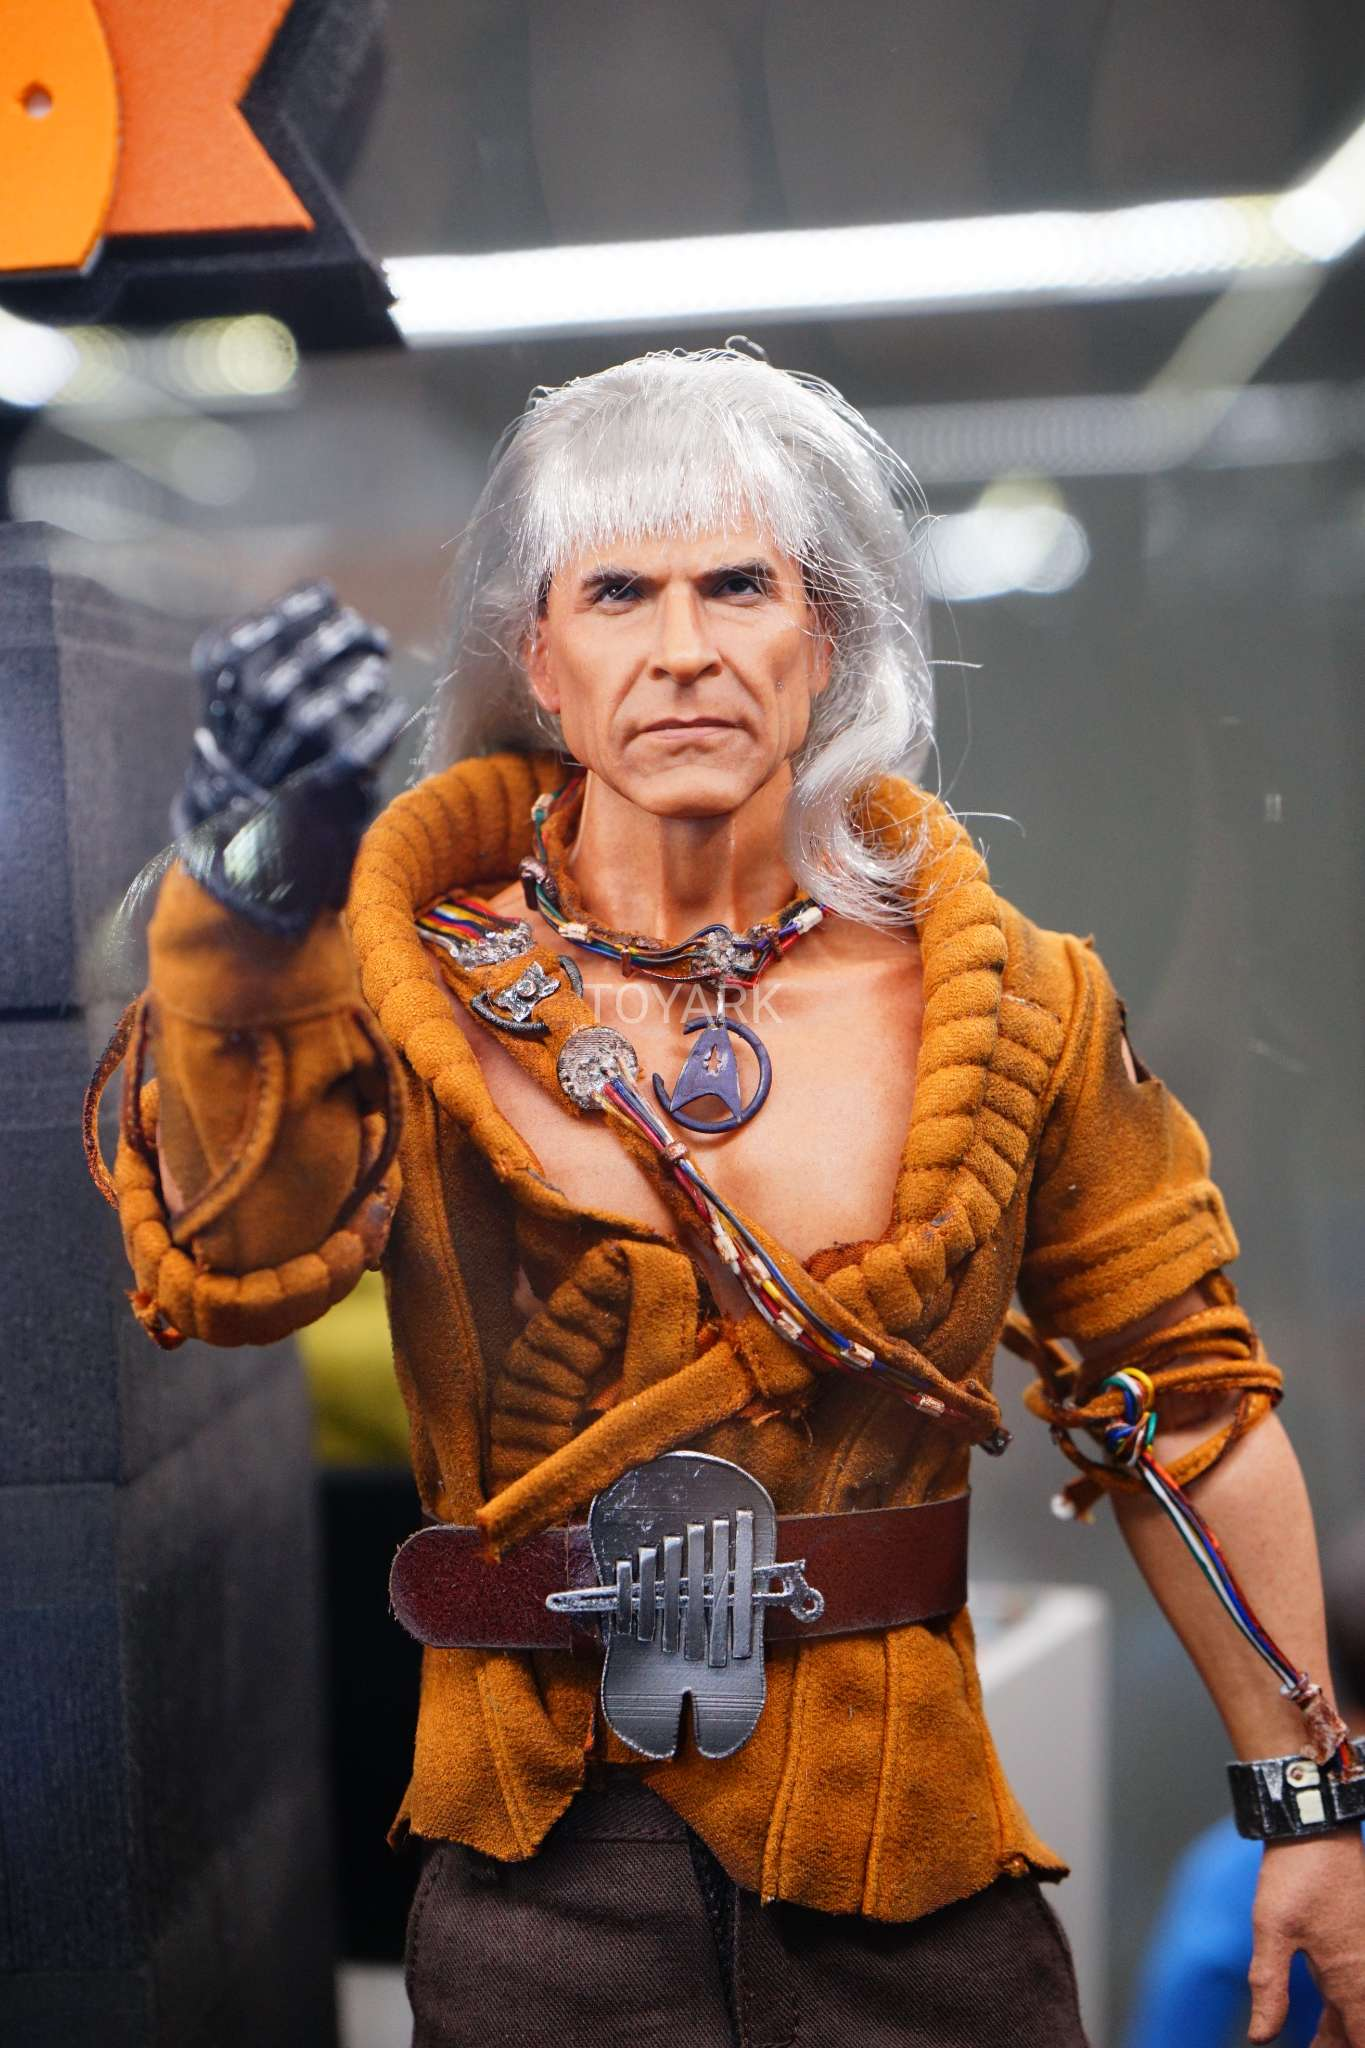 Toy Fair 2018 - Quantum Mechanix - Star Trek - Khan